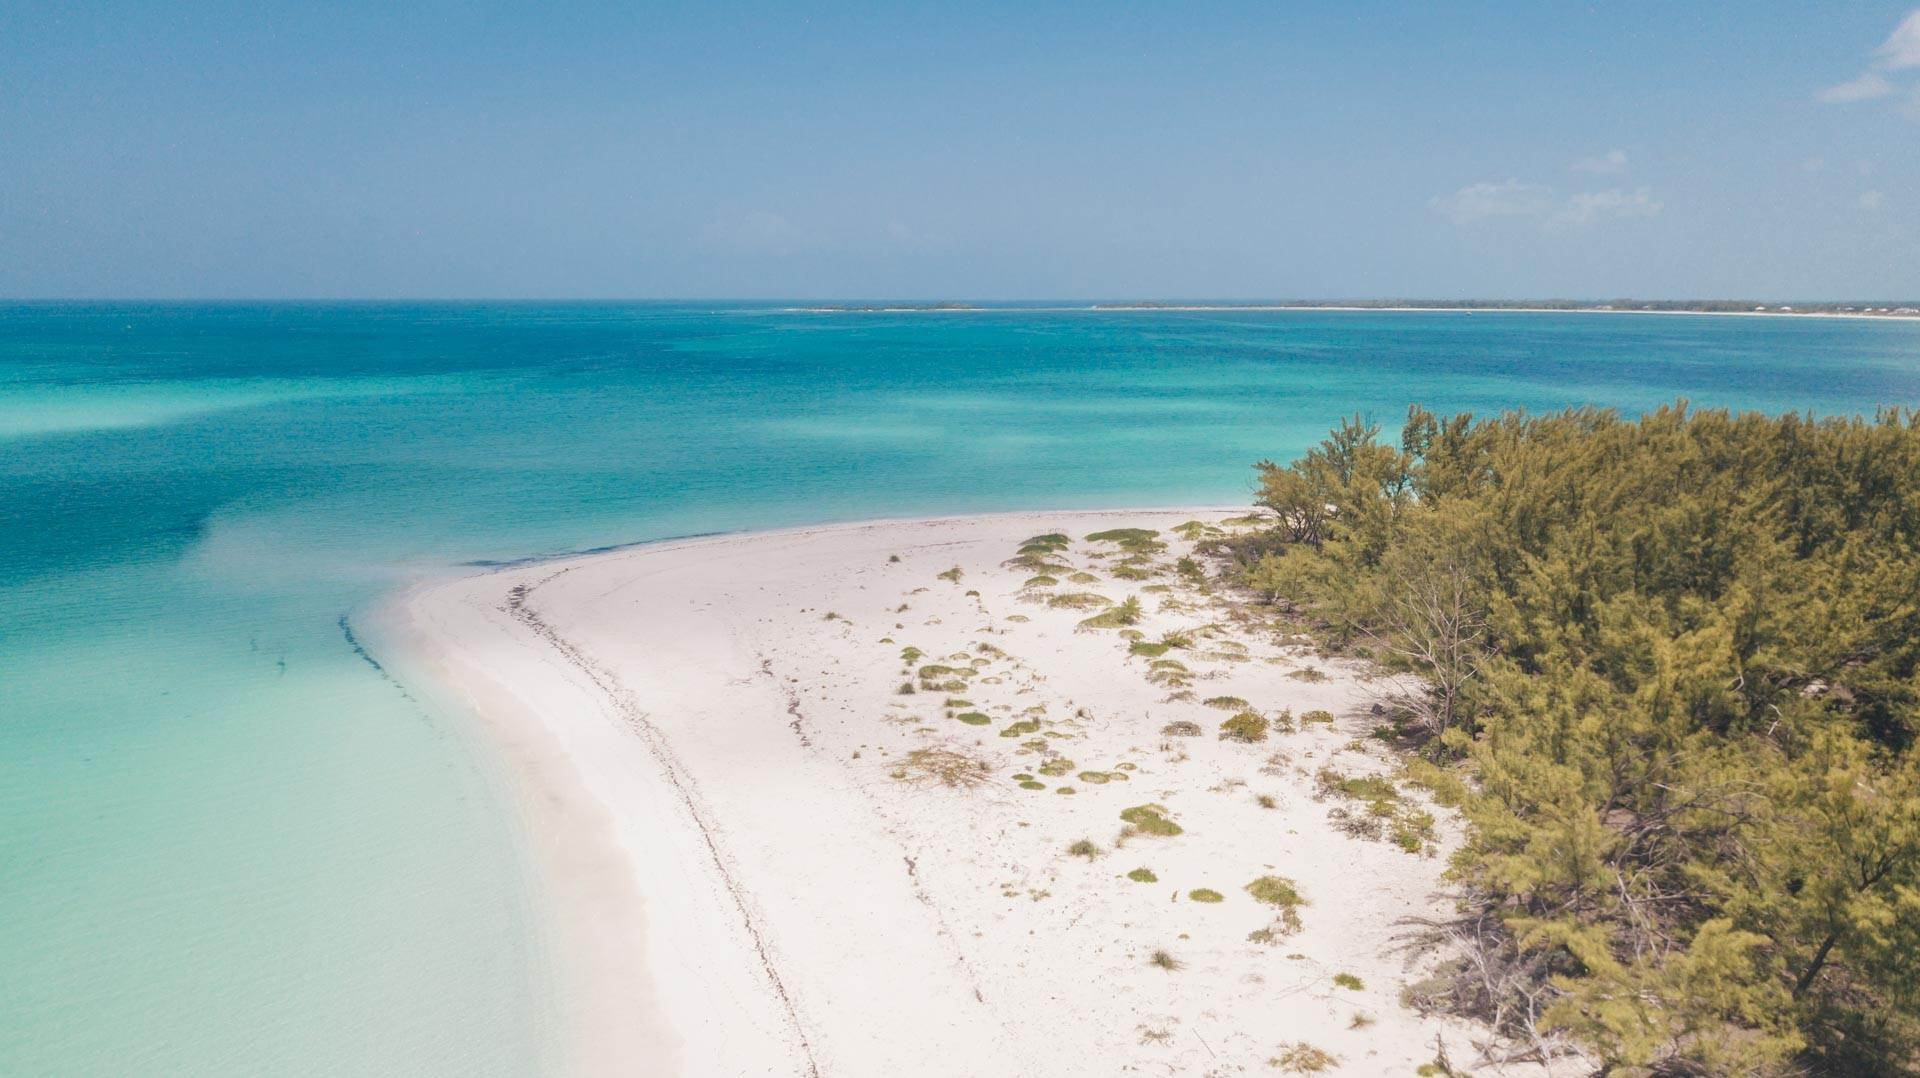 Land for Sale at Prime Beachfront Hotel Site - MLS 34278 Great Harbour Cay, Berry Islands, Bahamas